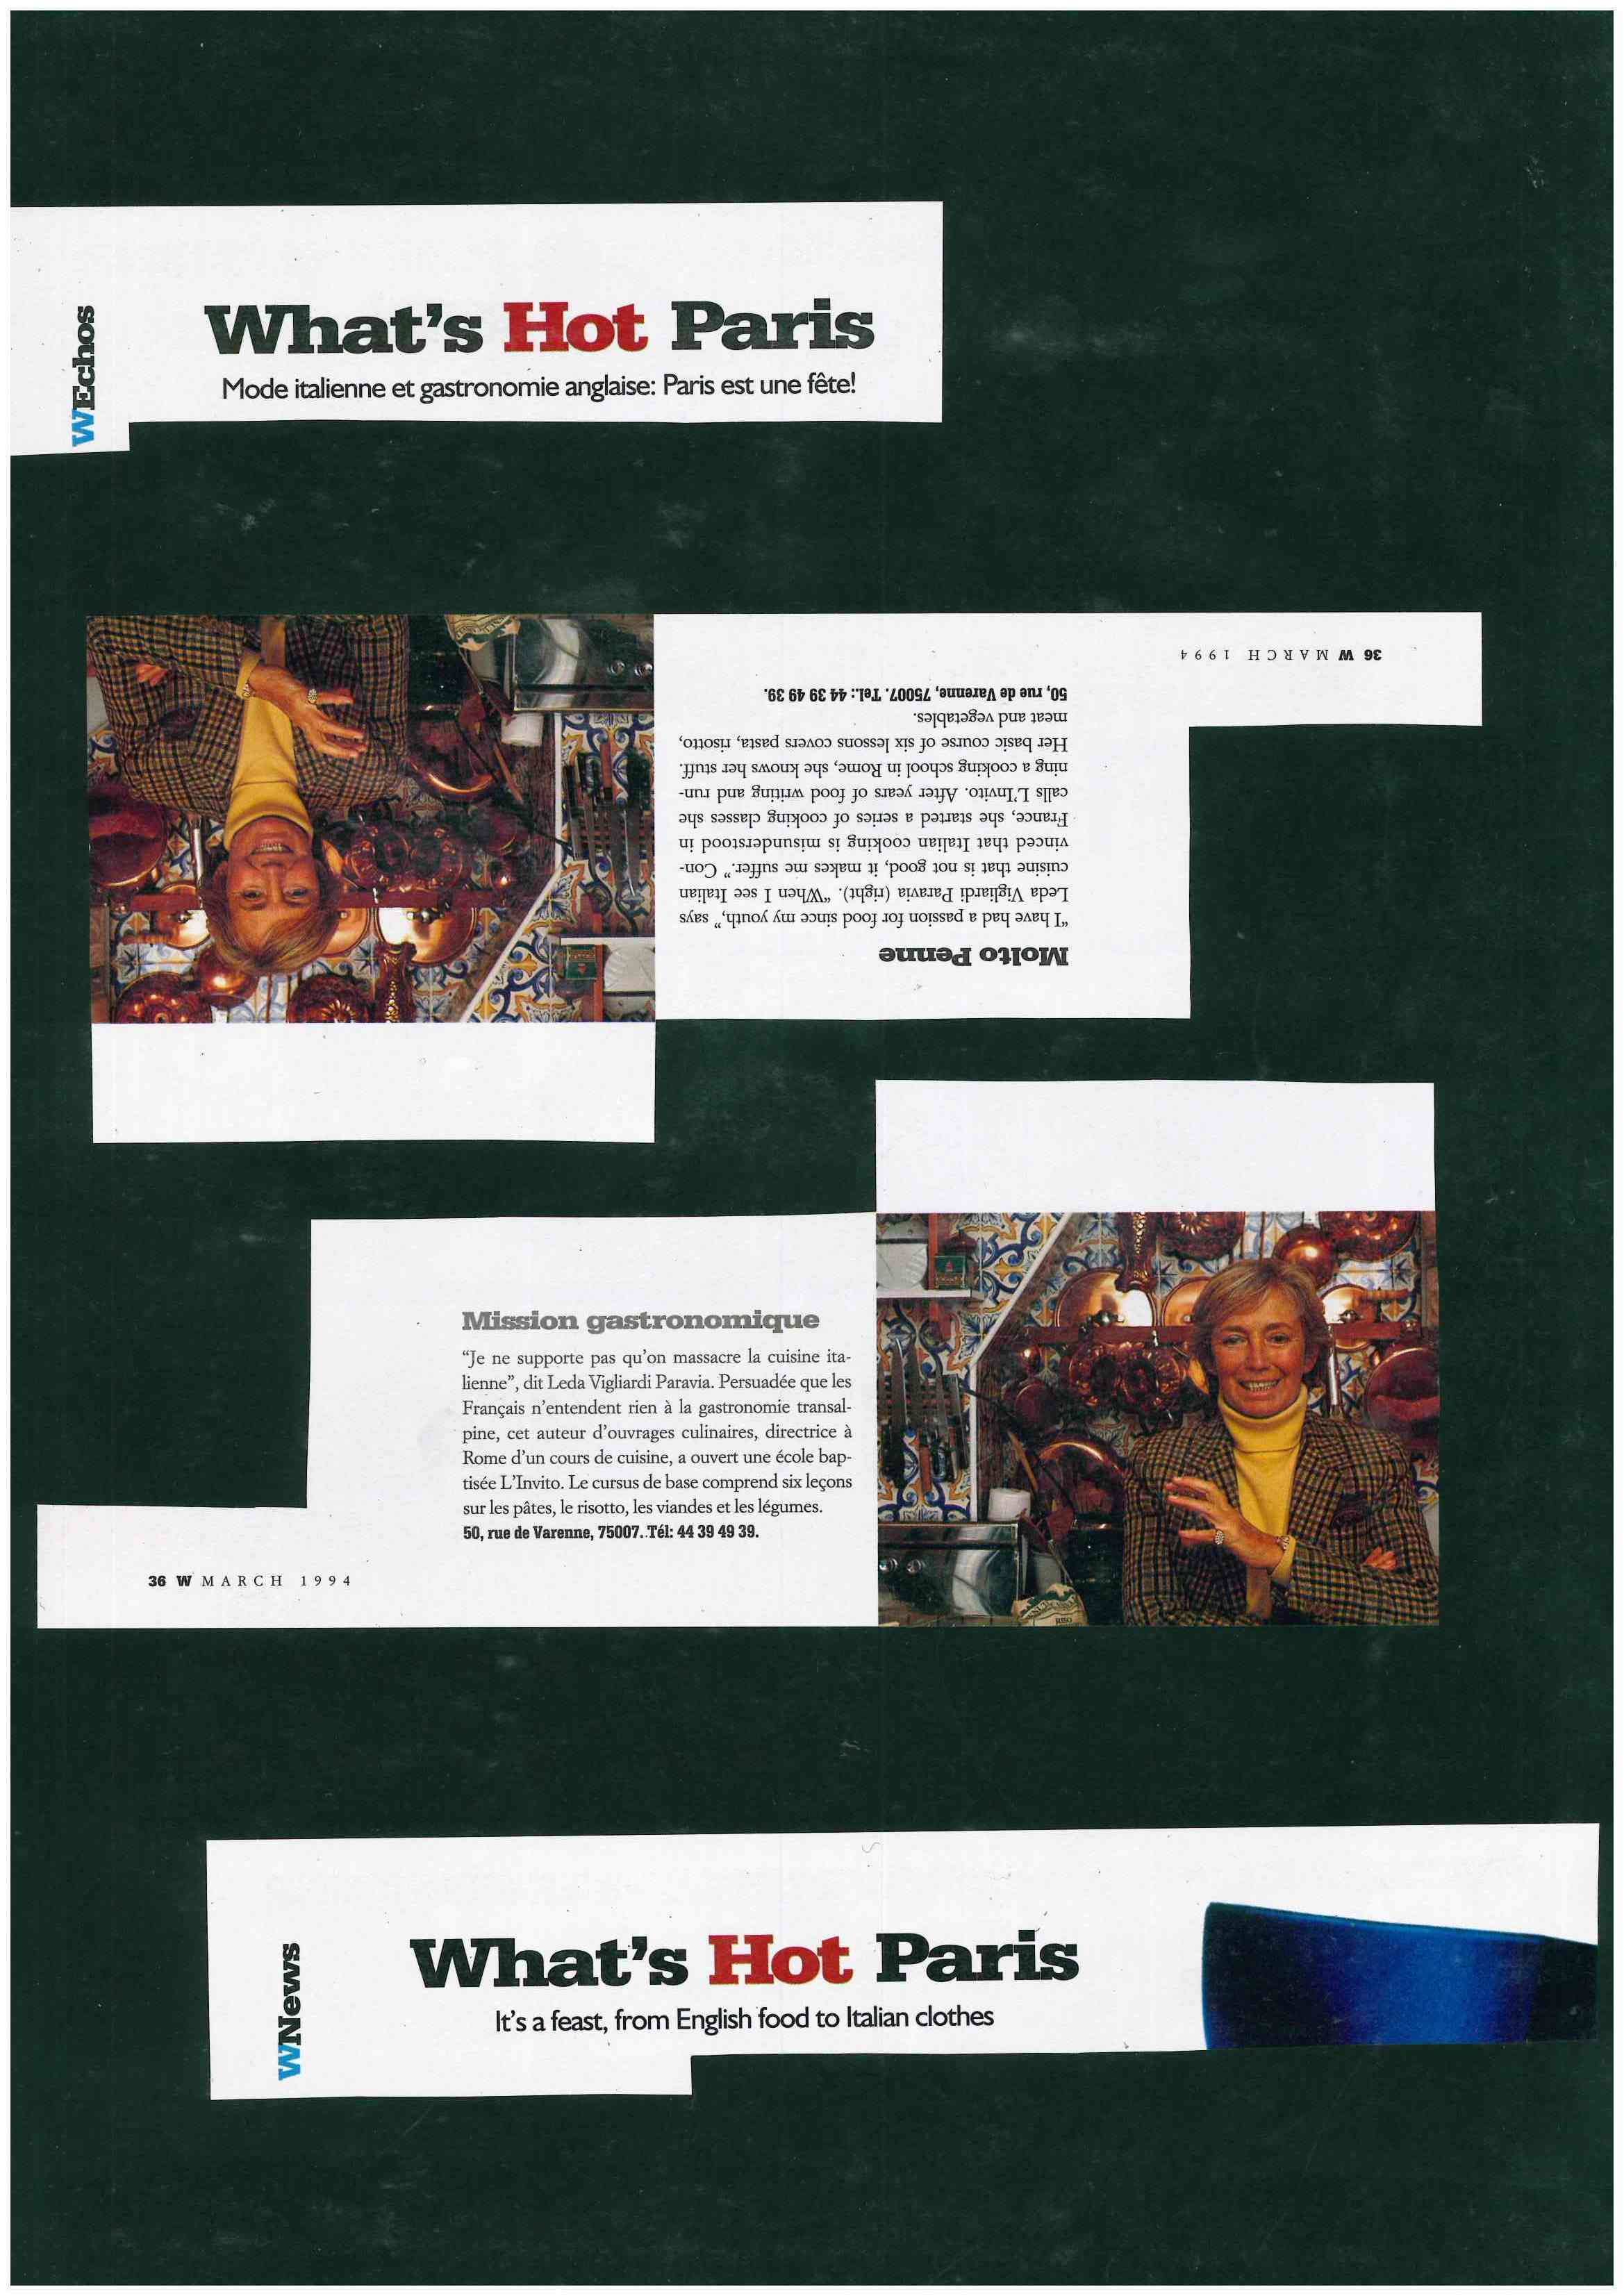 Pubblicazione Originale - WNews - What's Hot in Paris - March 1994